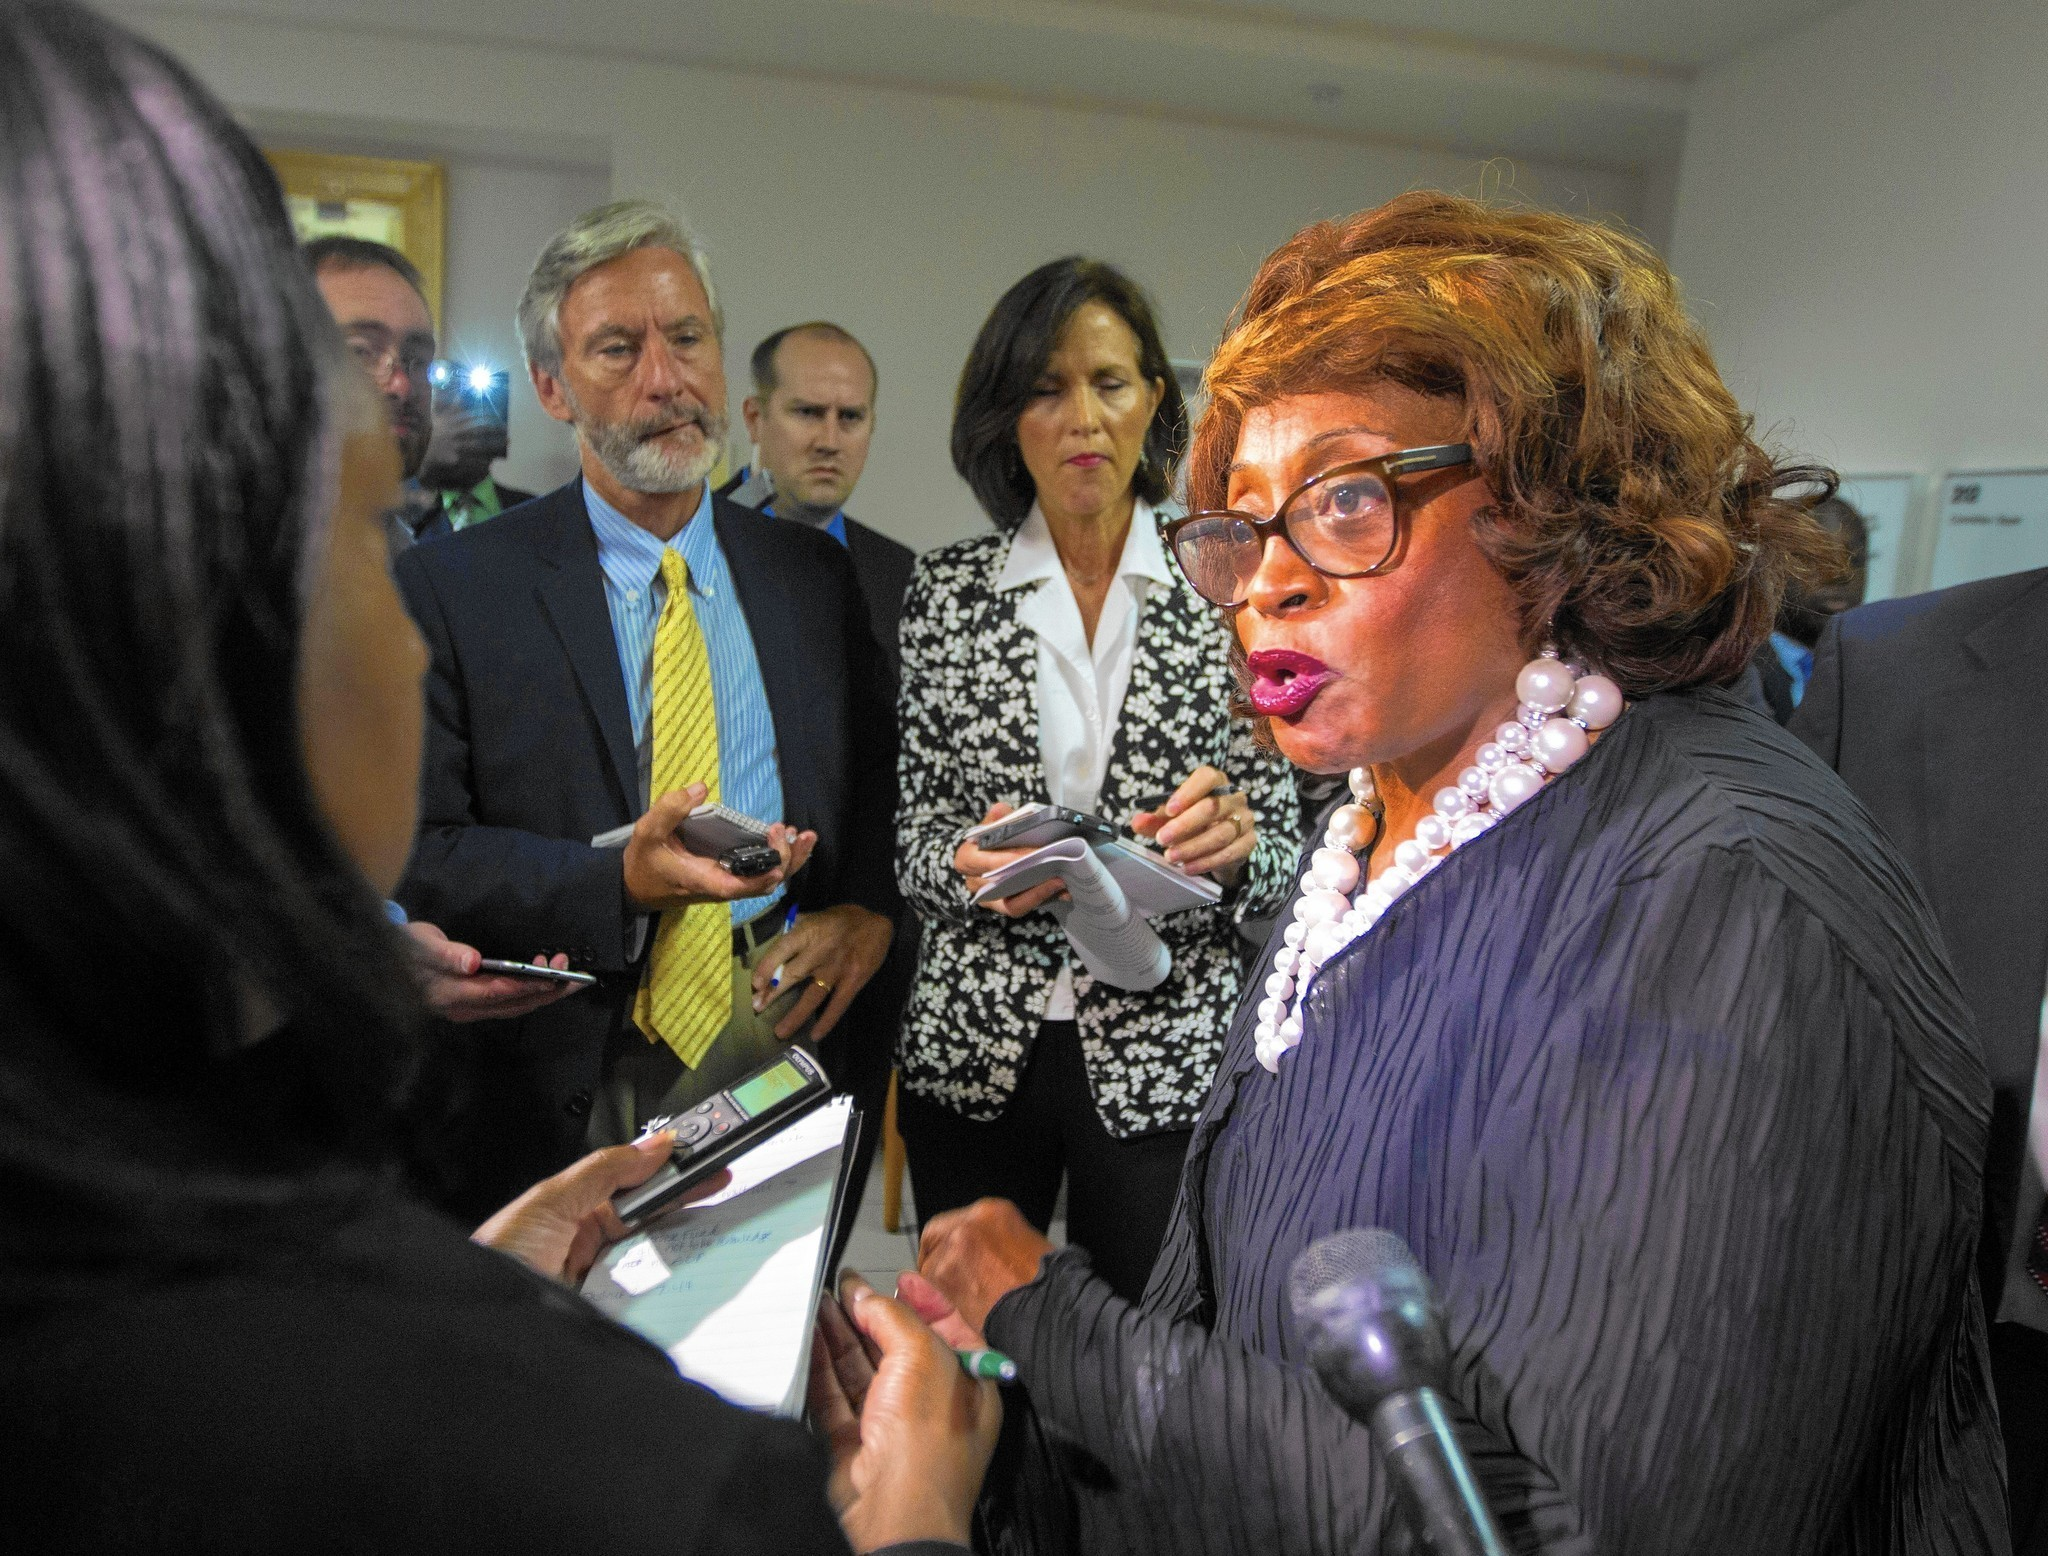 Corrine Brown Indicted On Corruption Charges, Officials Say